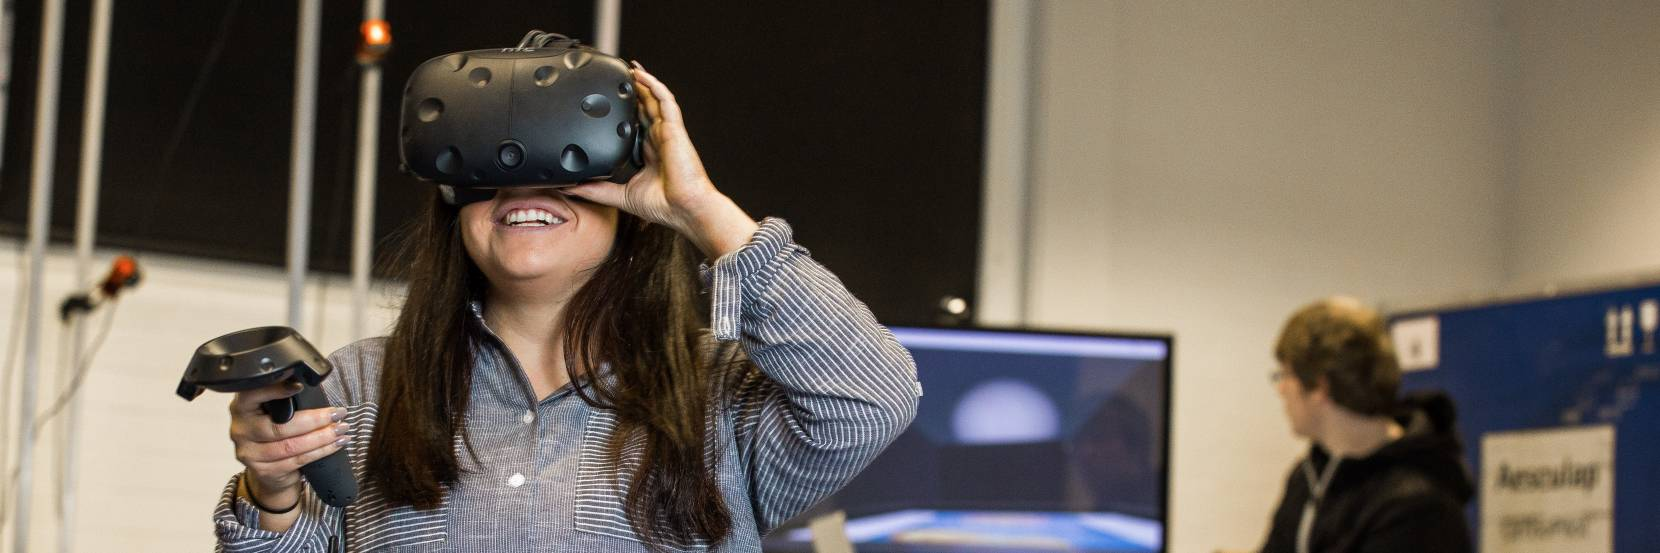 Students trial virtual reality simulators in the lab